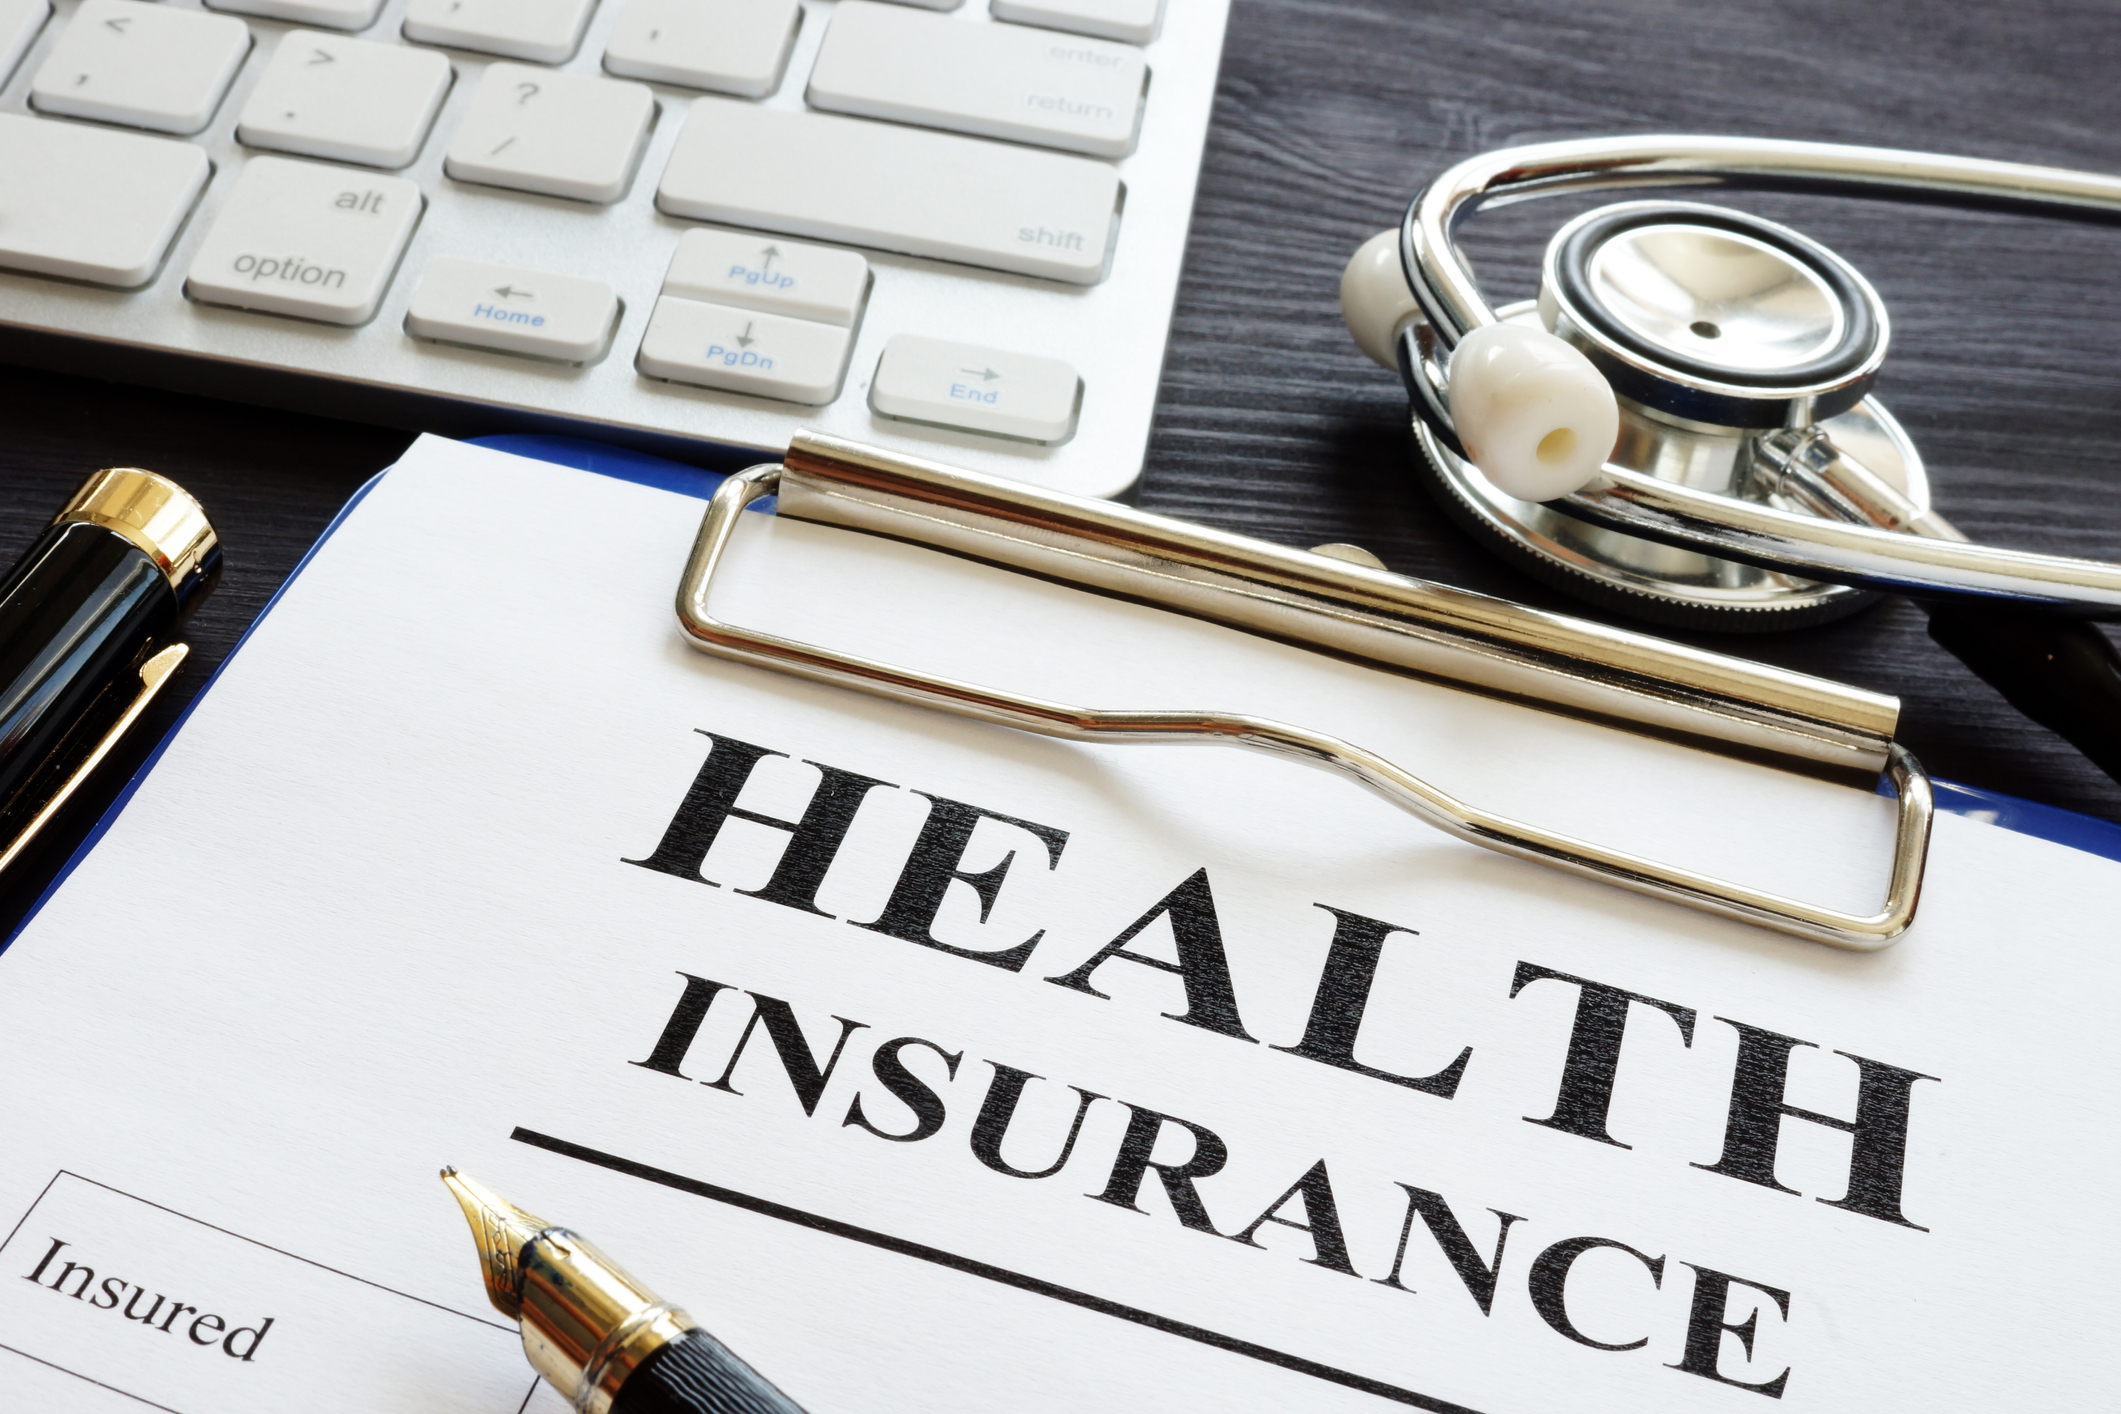 Individual health insurance policy and stethoscope.